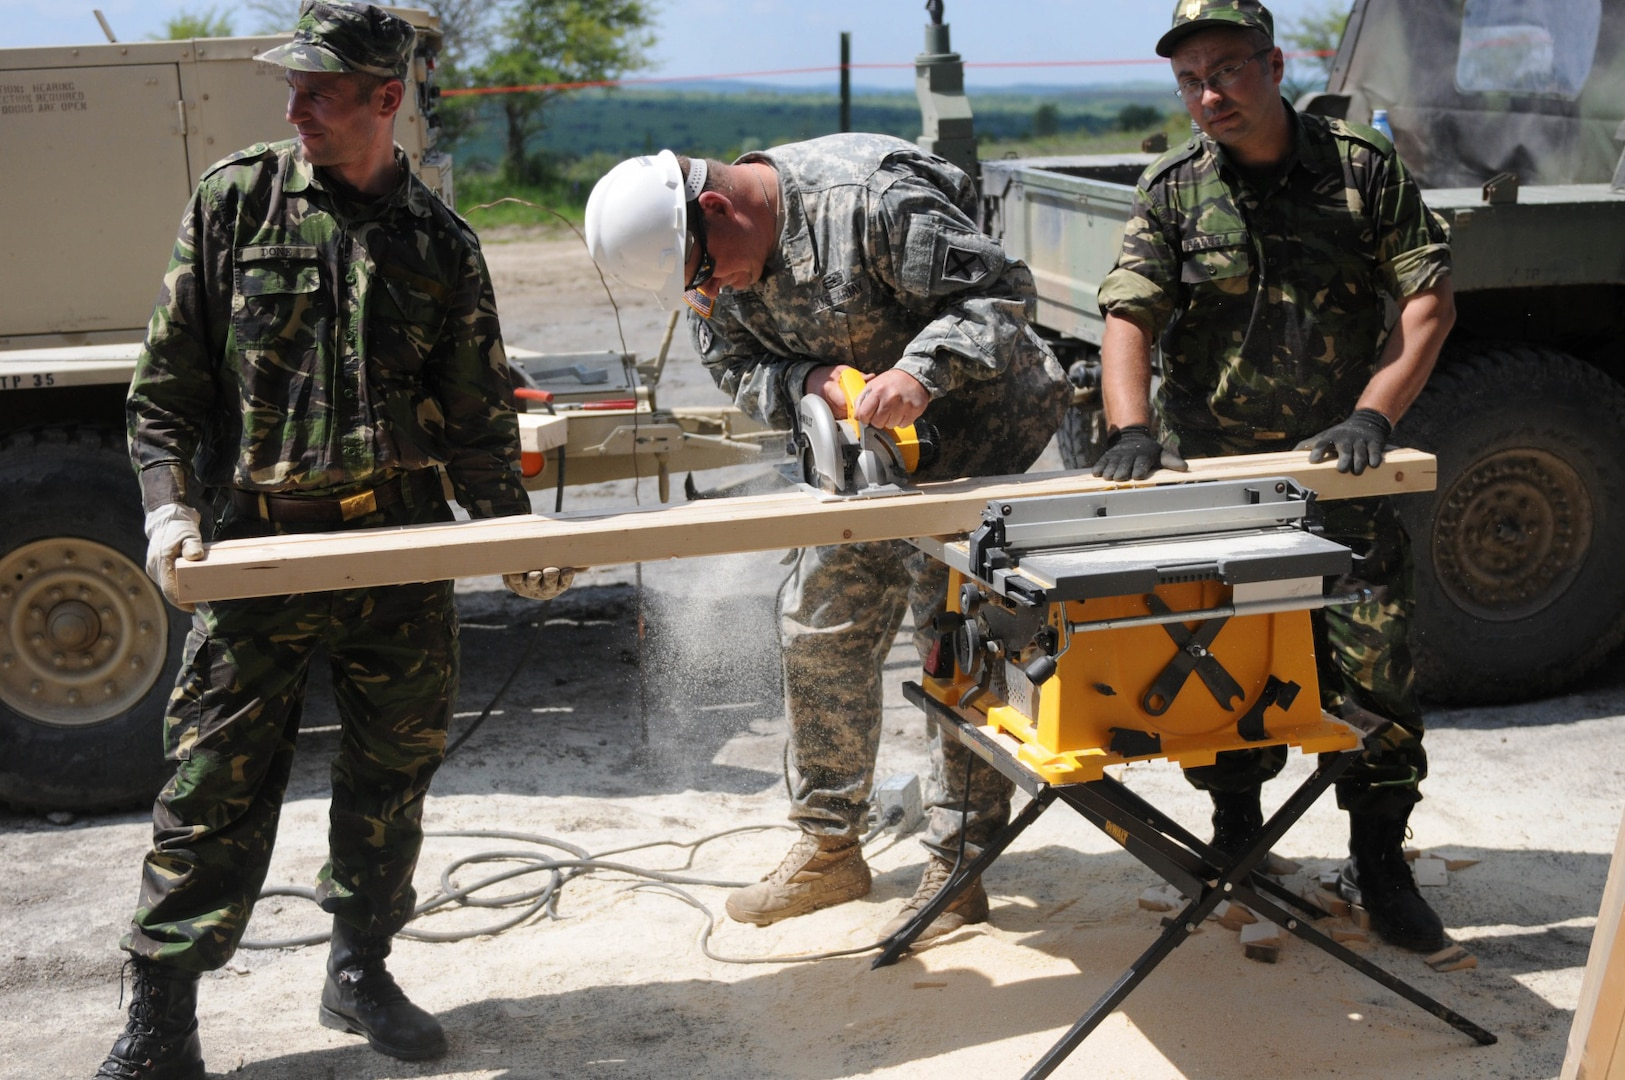 Cpl. Gigi Done, engineer, 10th Engineer Brigade, Romanian Land Forces; Sgt. Steve Reece, electrician, 877th Engineer Battalion Alabama Army National Guard and Cpl. Baluta, engineer, 10th Engineer Brigade, Romanian Land Forces, work together to cut boards used for building a multipurpose building, May 22, 2016, in Cincu, Romania. The building is on Cincu Training Range and the partnership between the U.S. and Romanian forces is part of Resolute Castle 16, a joint training operation between U.S. and NATO forces focused on building strong partnerships among NATO allies.